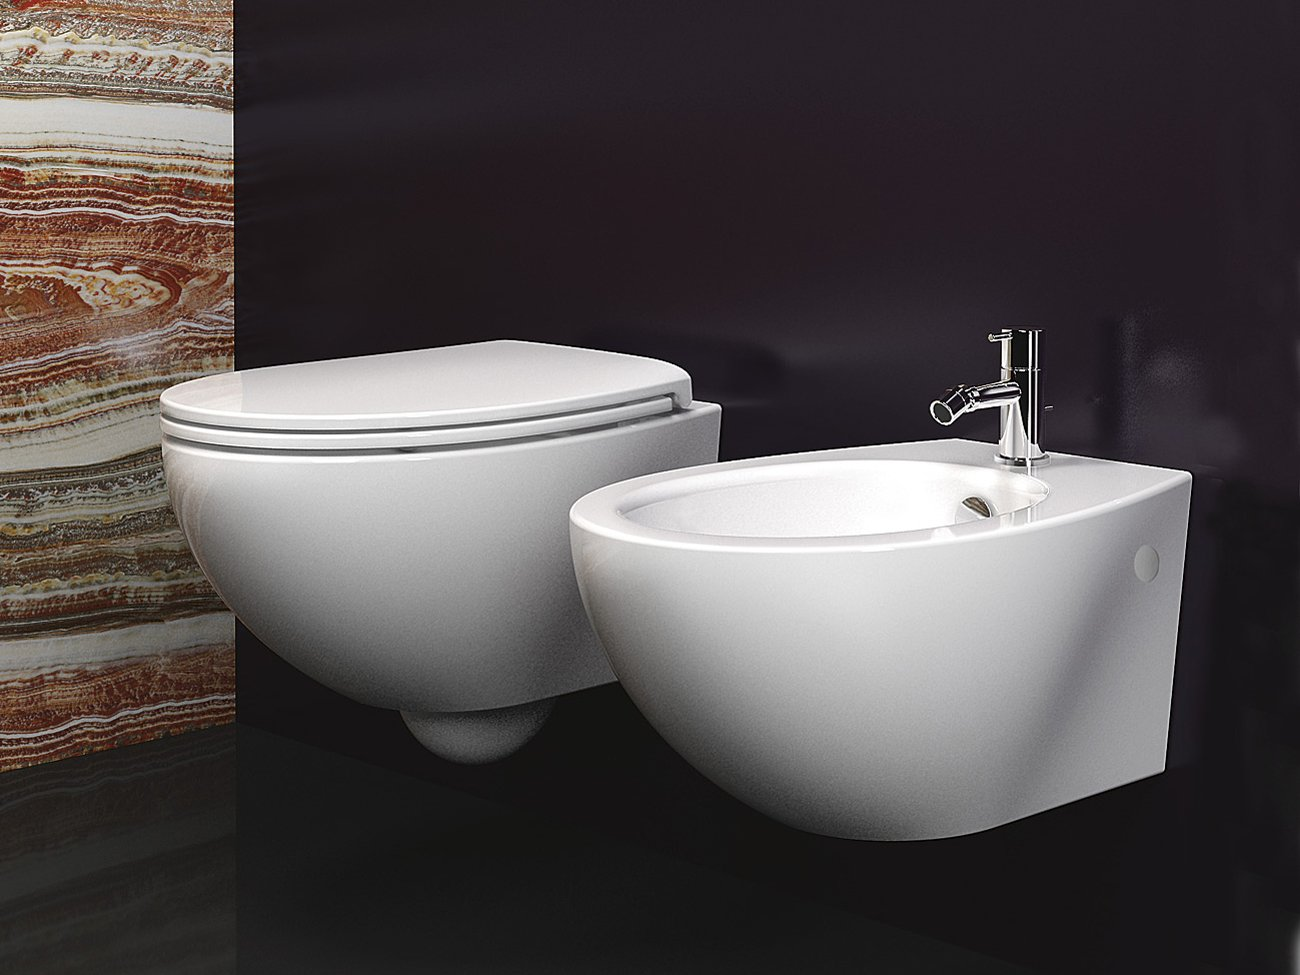 Velis 57 sosp bidet by ceramica catalano for Ceramica catalano